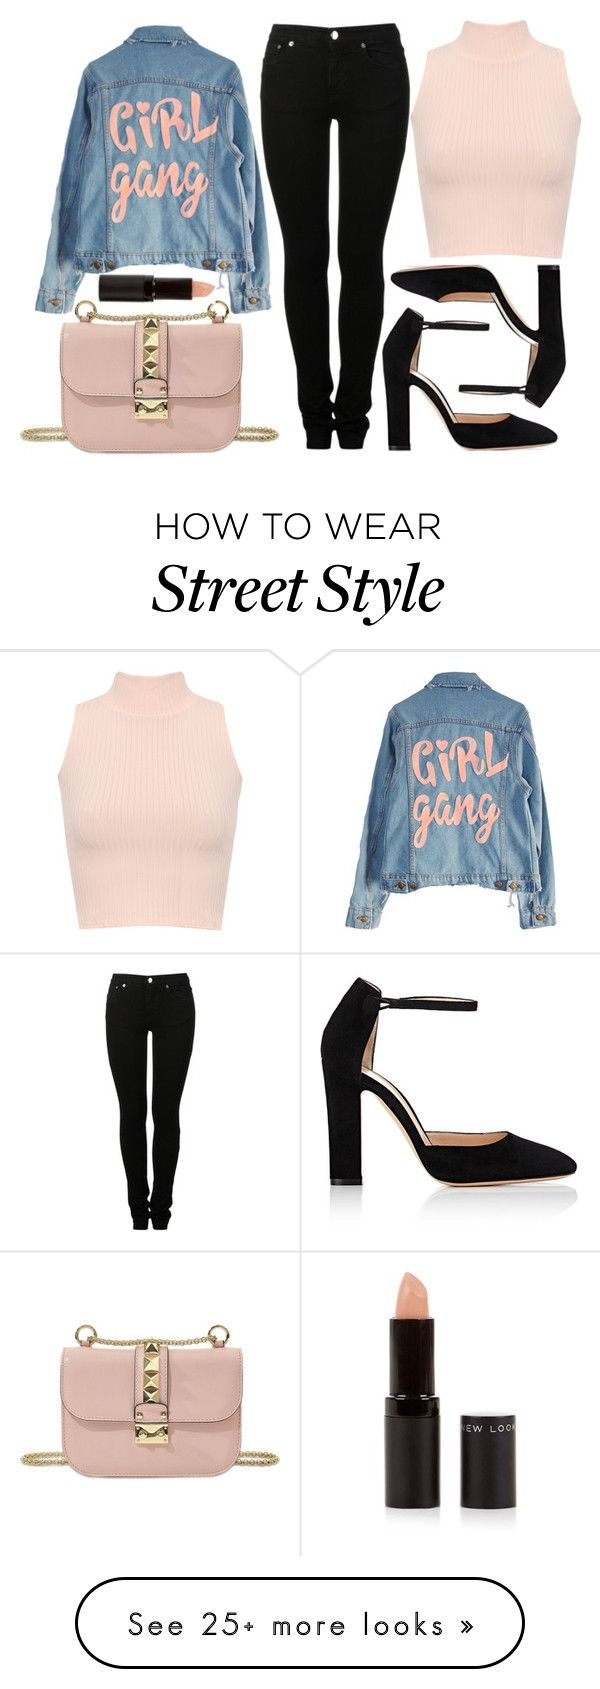 """""""street style"""" by sisaez on Polyvore featuring High Heels Suicide, Valentino, MM6 Maison Margiela, WearAll, Gianvito Rossi and New Look"""